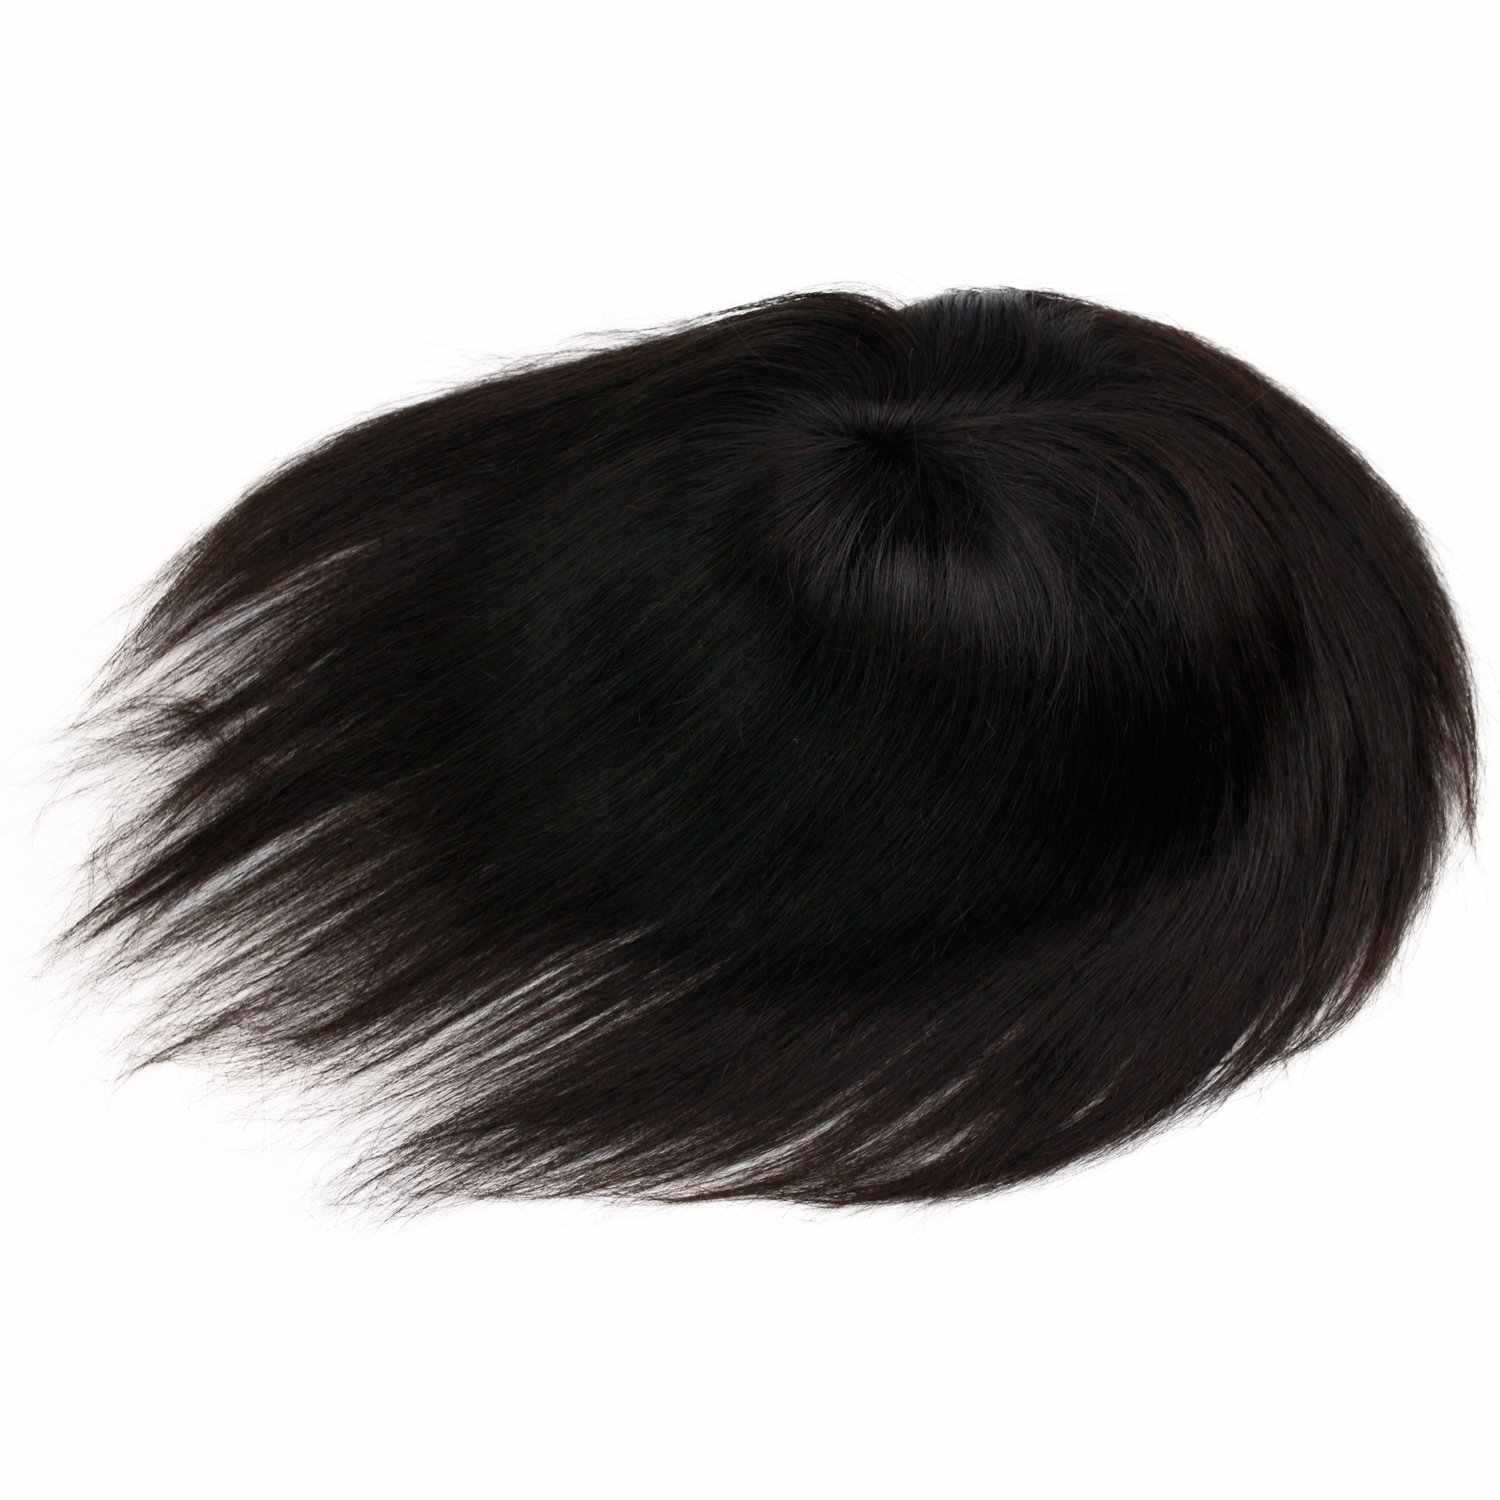 """European Virgin Human Hair Toupee for Men Hairpiece Swiss Mono Lace with PU Around Medium Density Natural Black Color 6""""x8"""""""